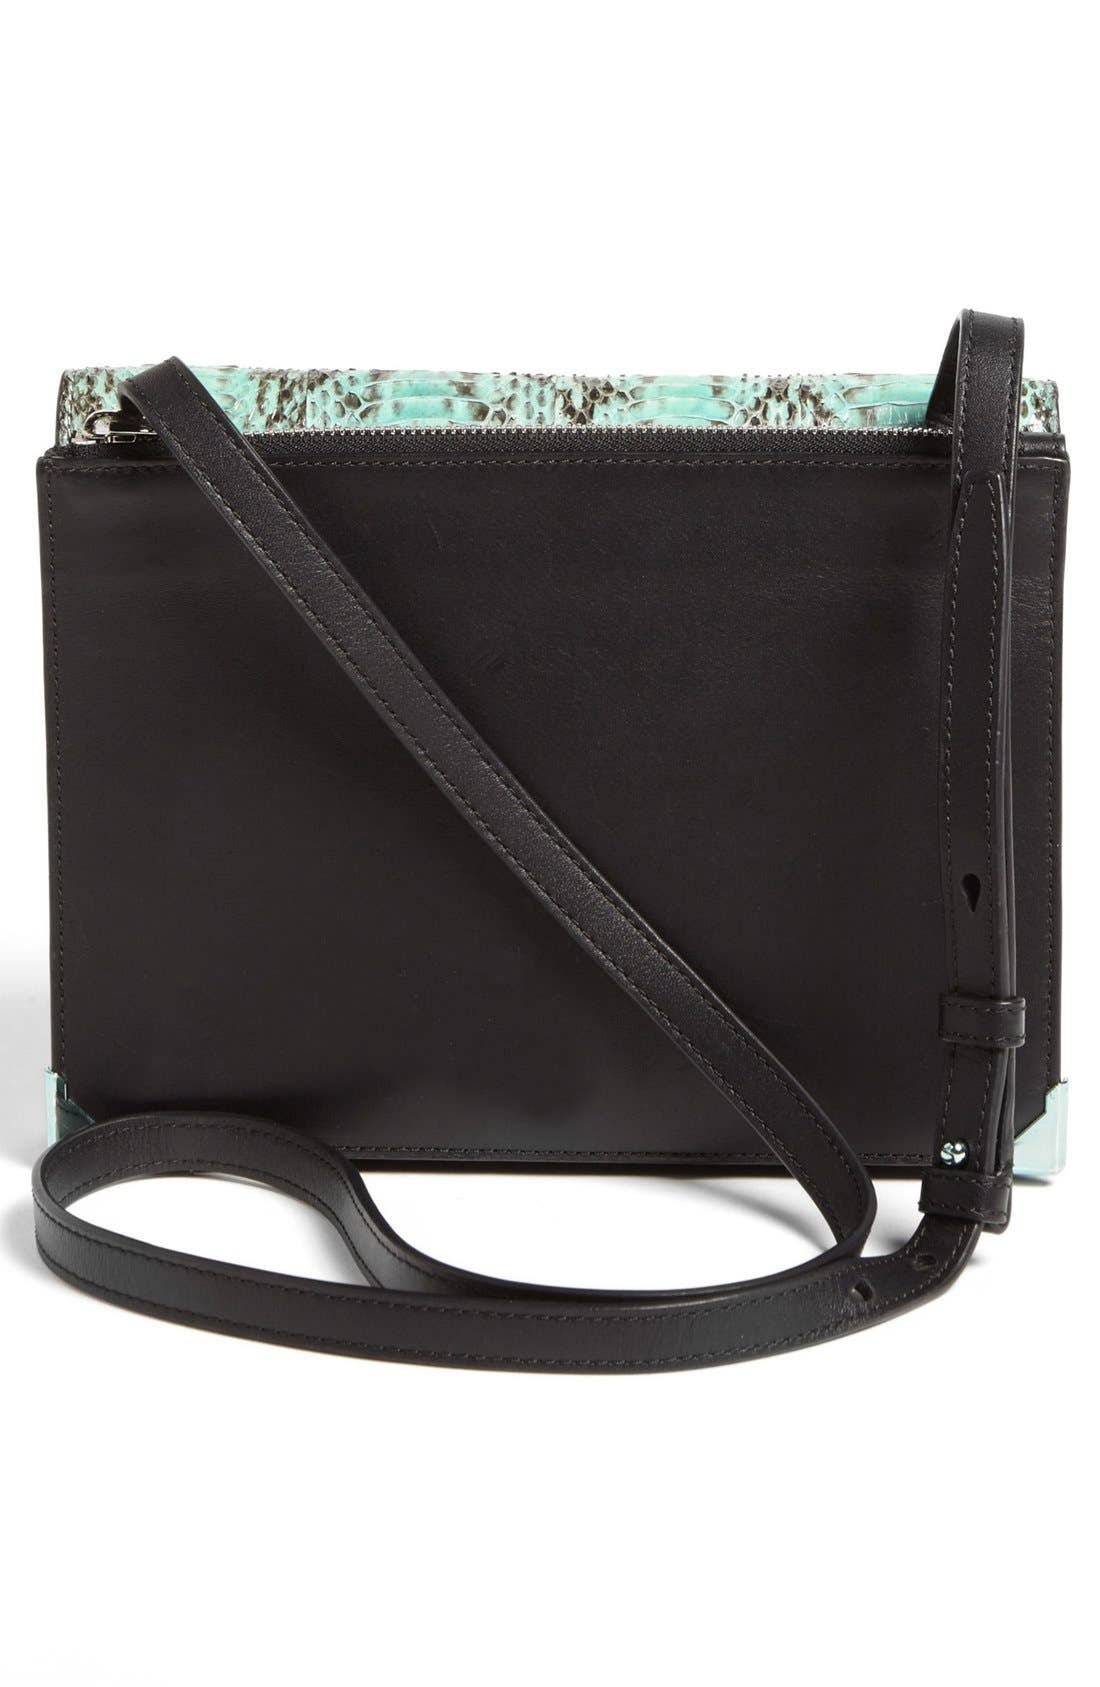 Alternate Image 3  - Alexander Wang 'Prisma' Genuine Snakeskin & Leather Crossbody Bag